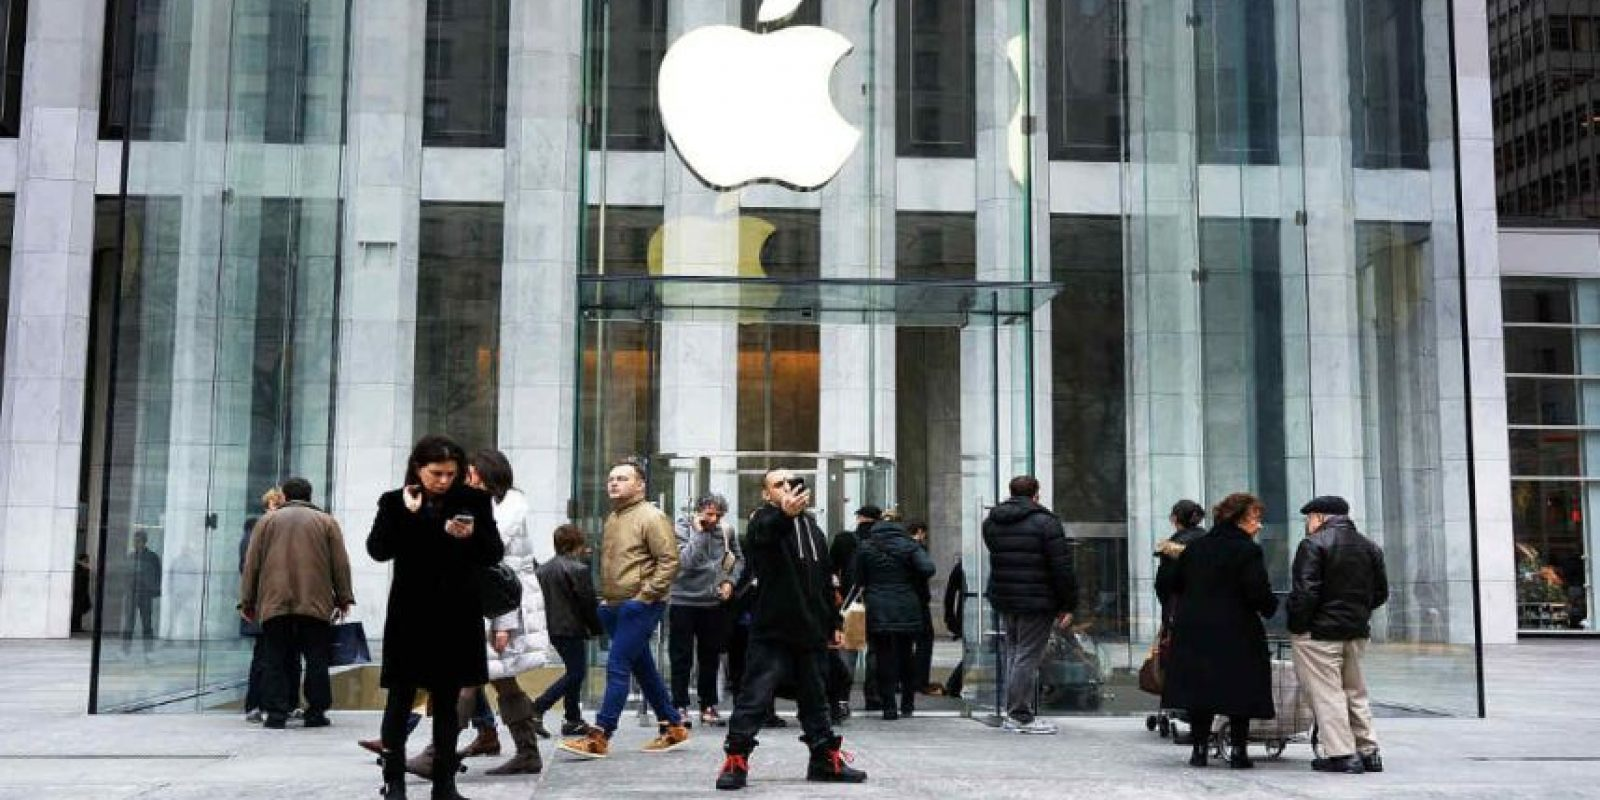 La Apple Store de SoHo en Nueva York es una de las más importantes. Foto: Getty Images